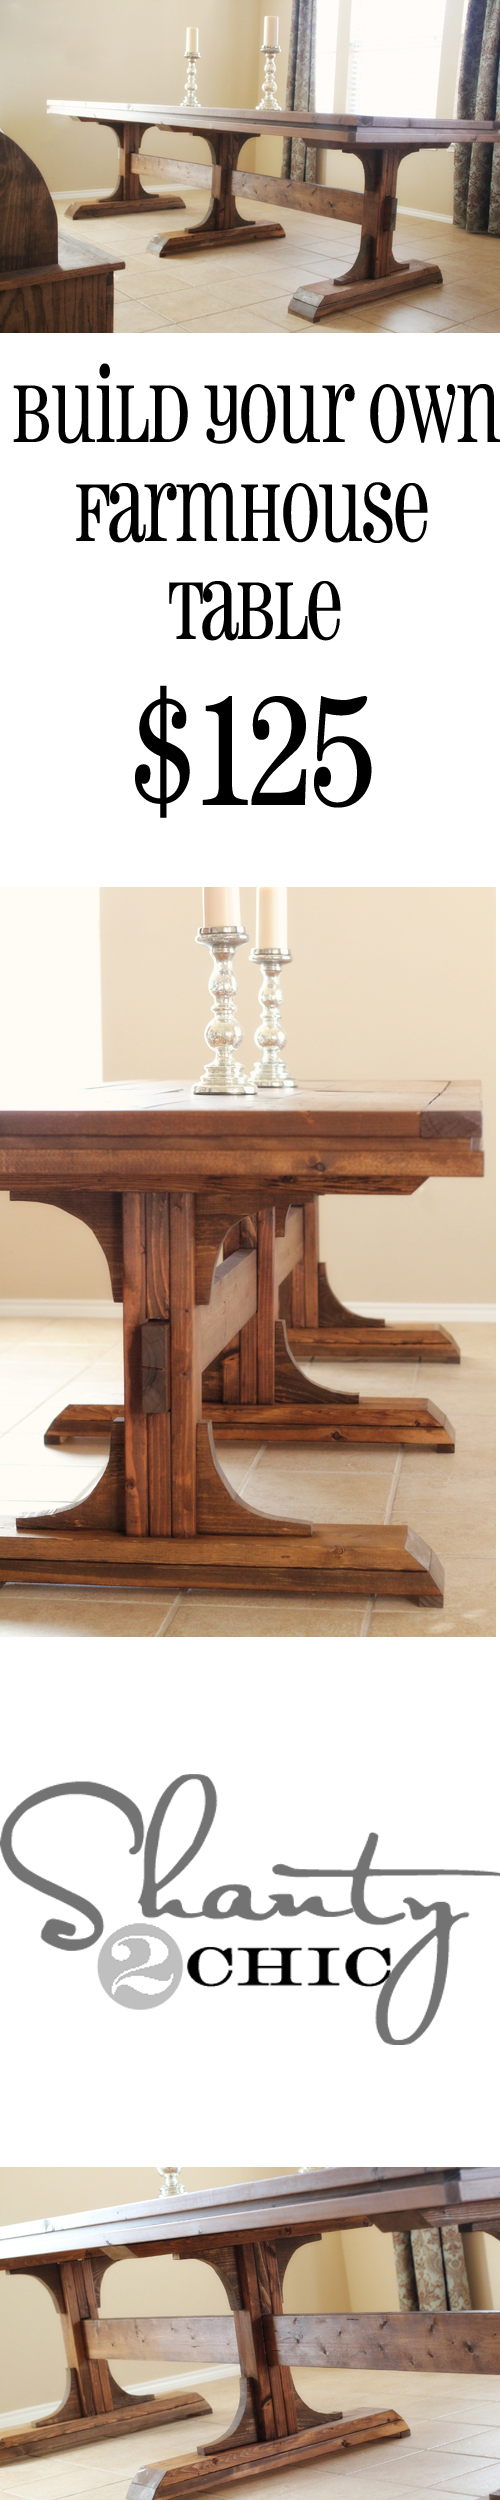 DIY Dining Table Shanty 2 Chic